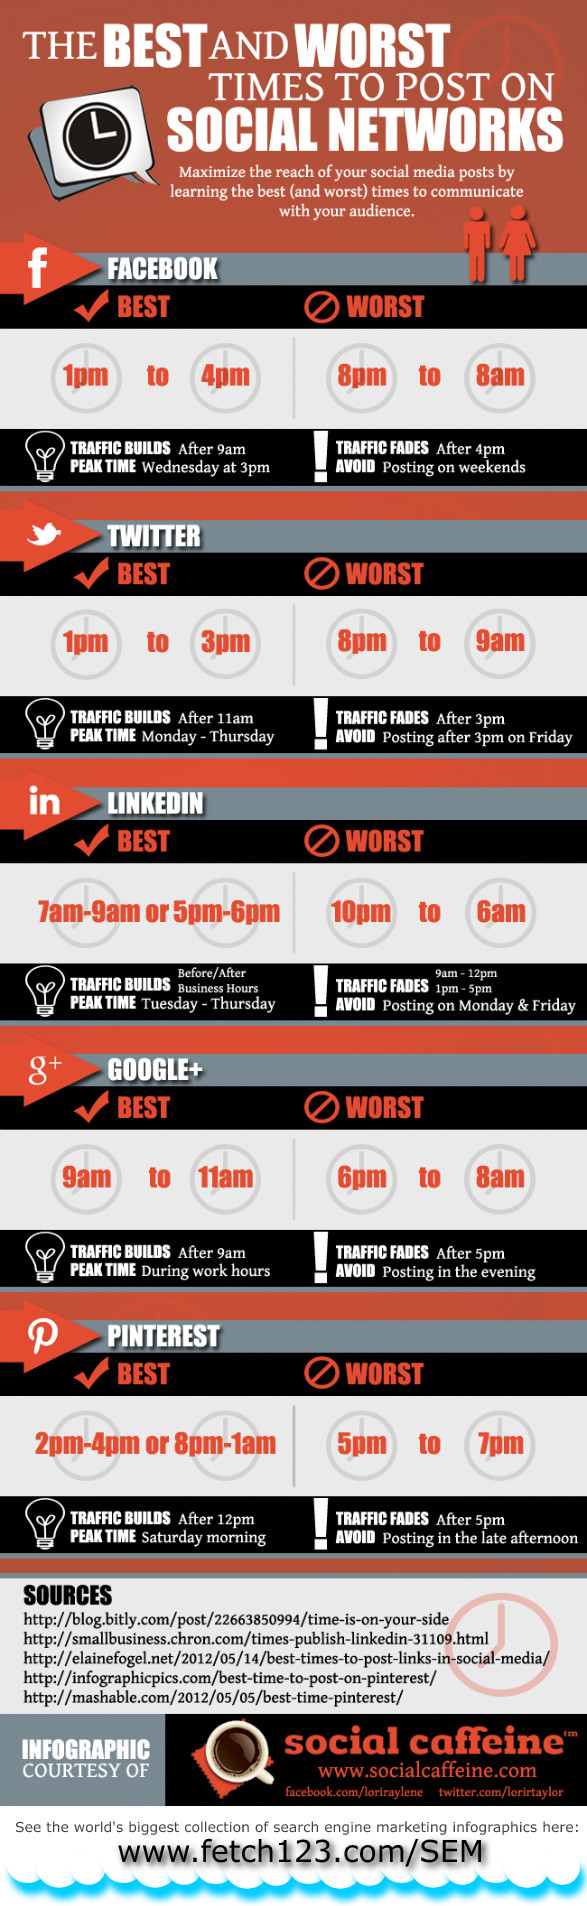 What is the best time to post on social media sites?